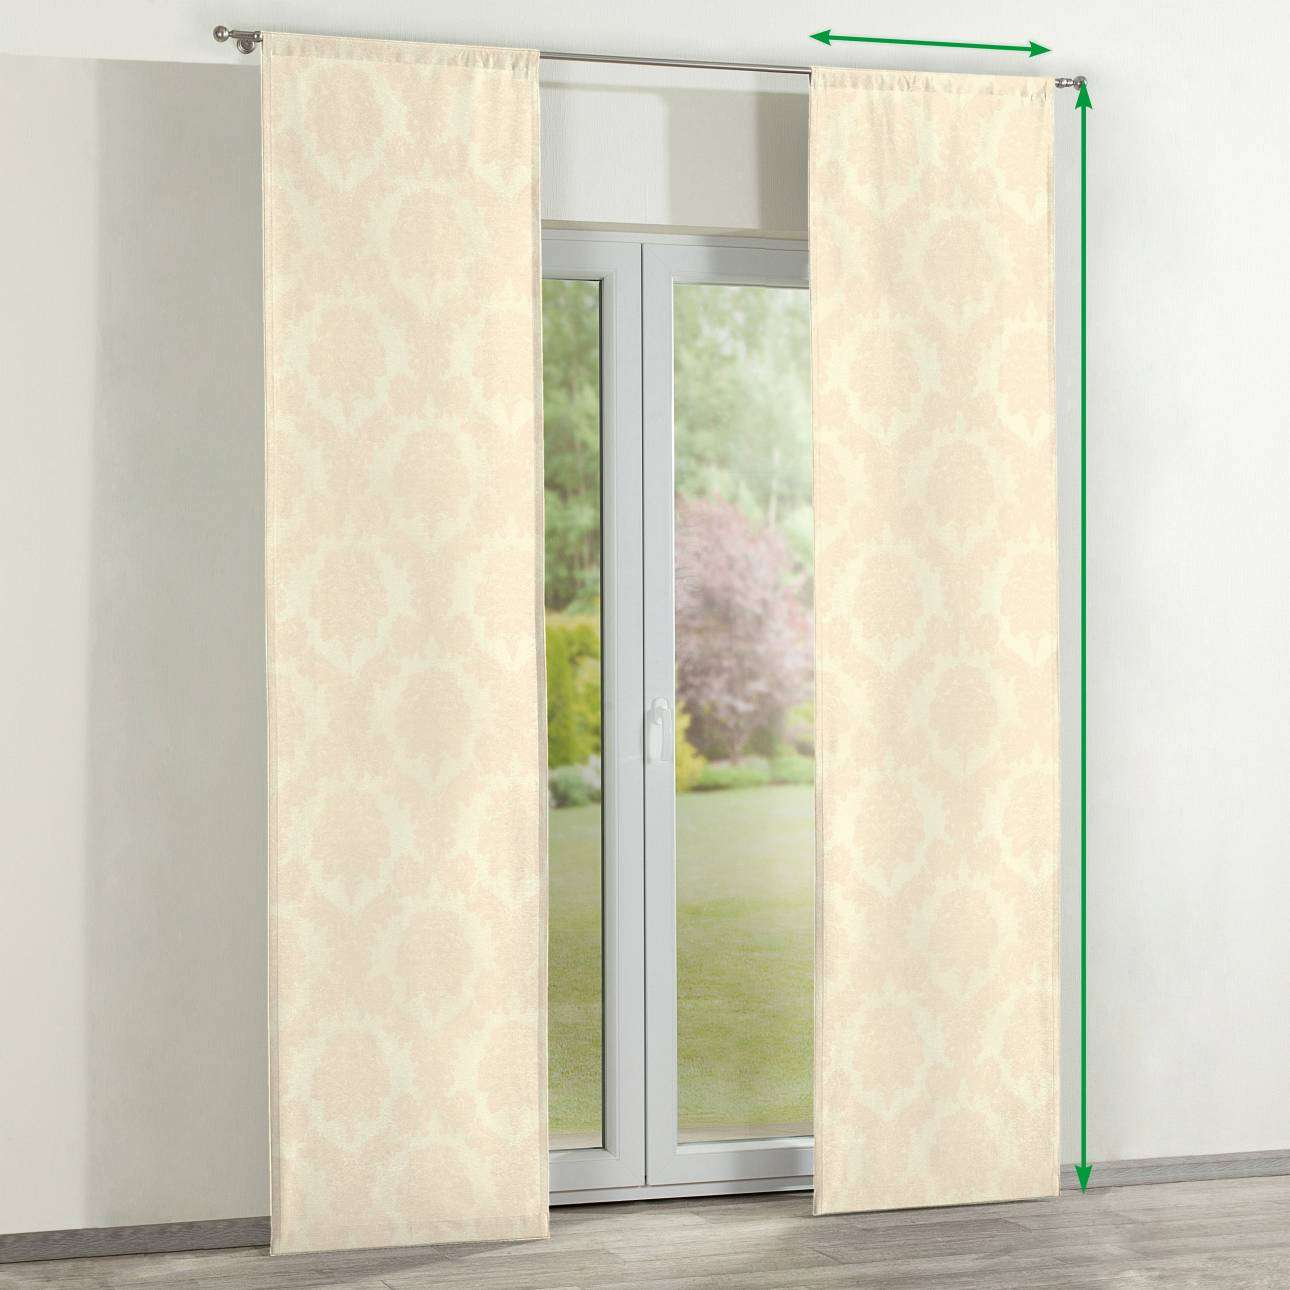 Slot panel curtains – Set of 2 in collection Damasco, fabric: 613-01